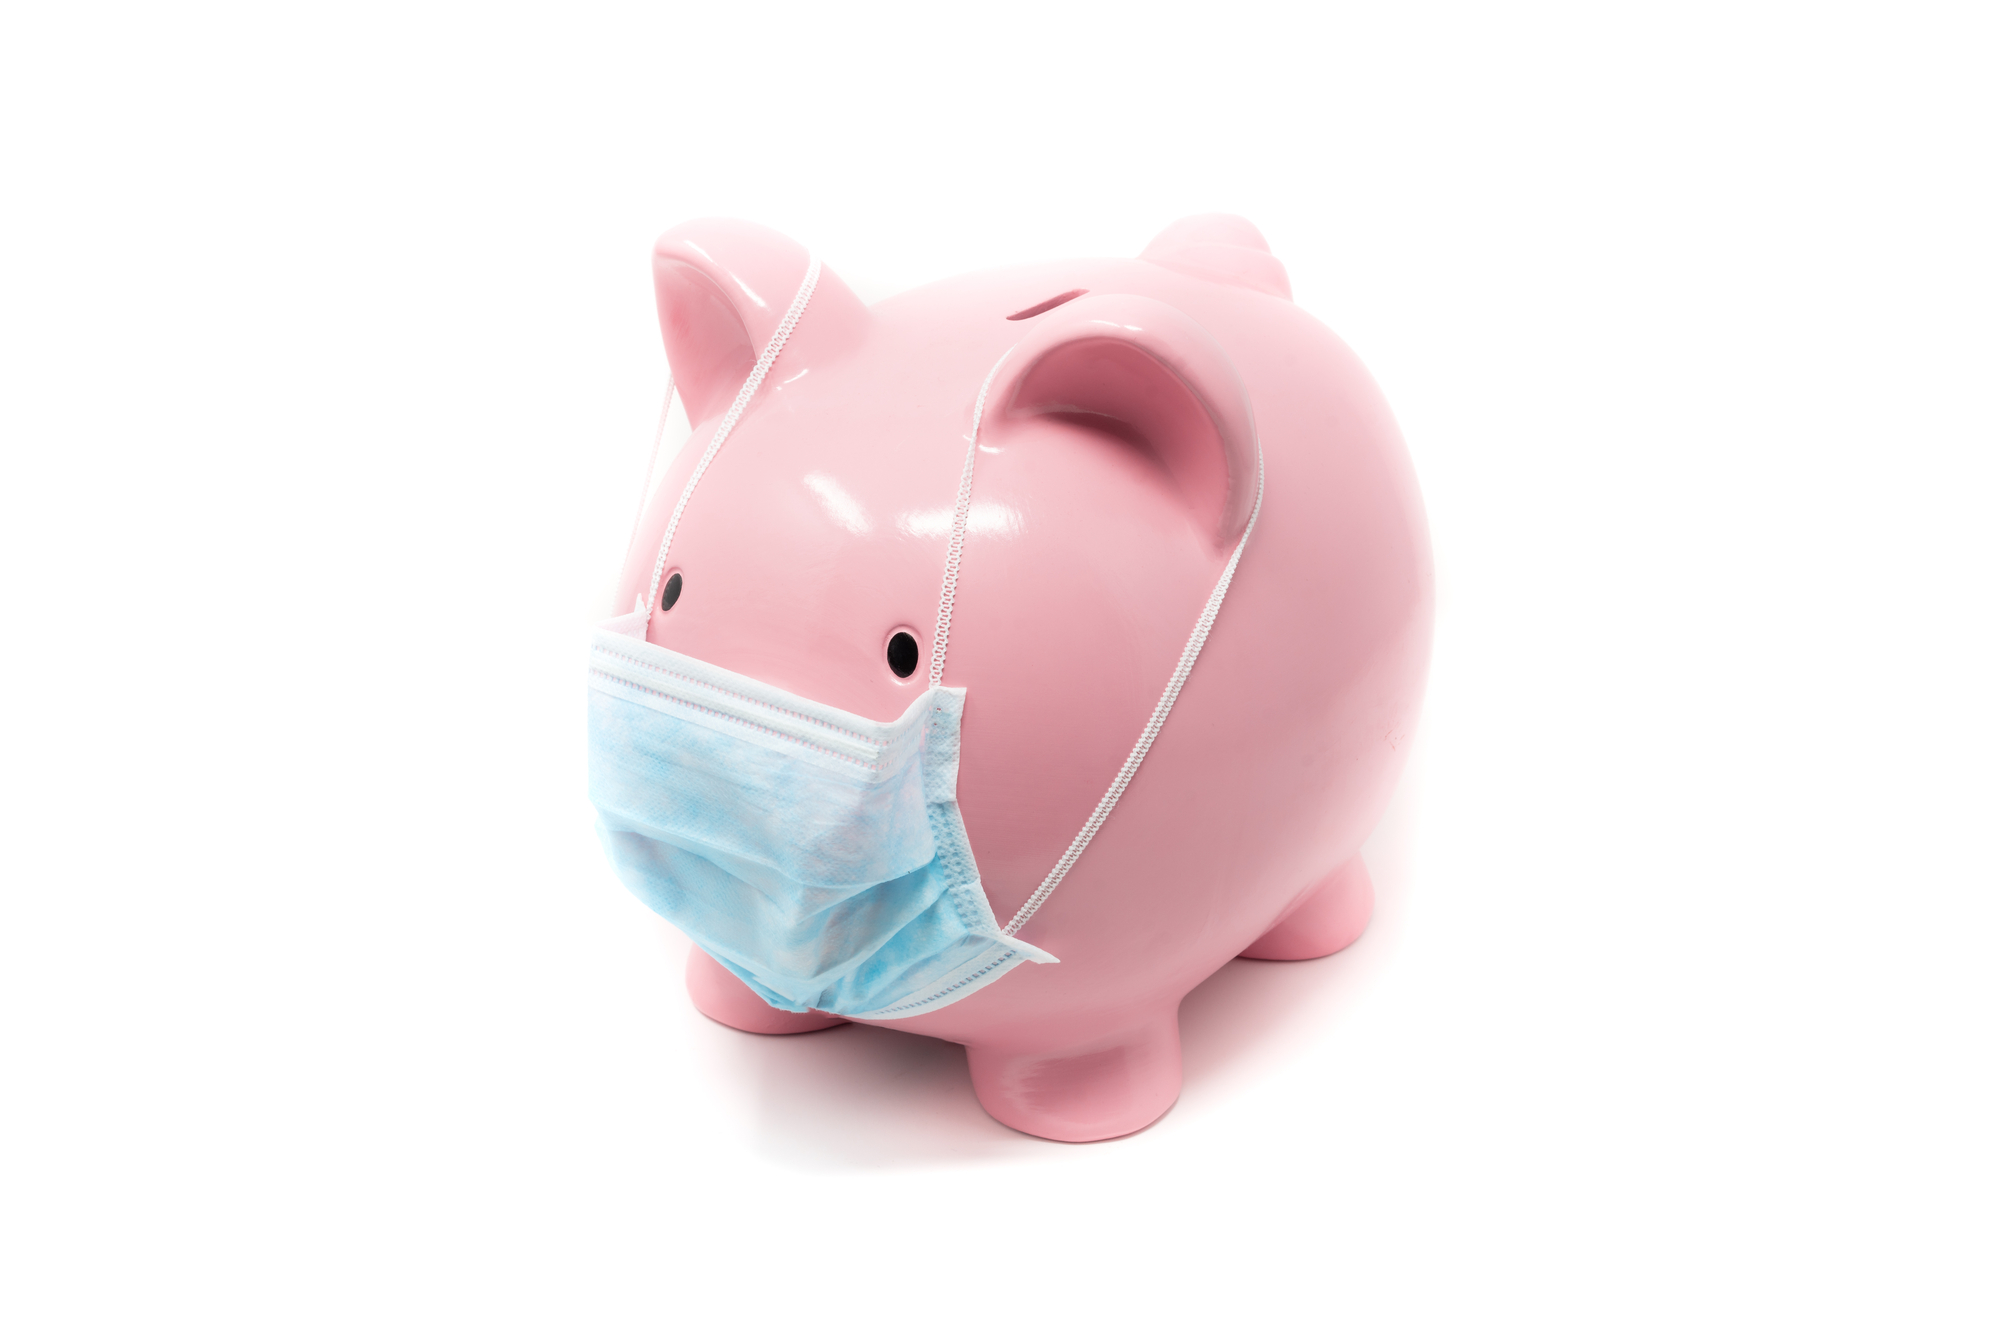 piggy_bank_with_surgery_mask_on